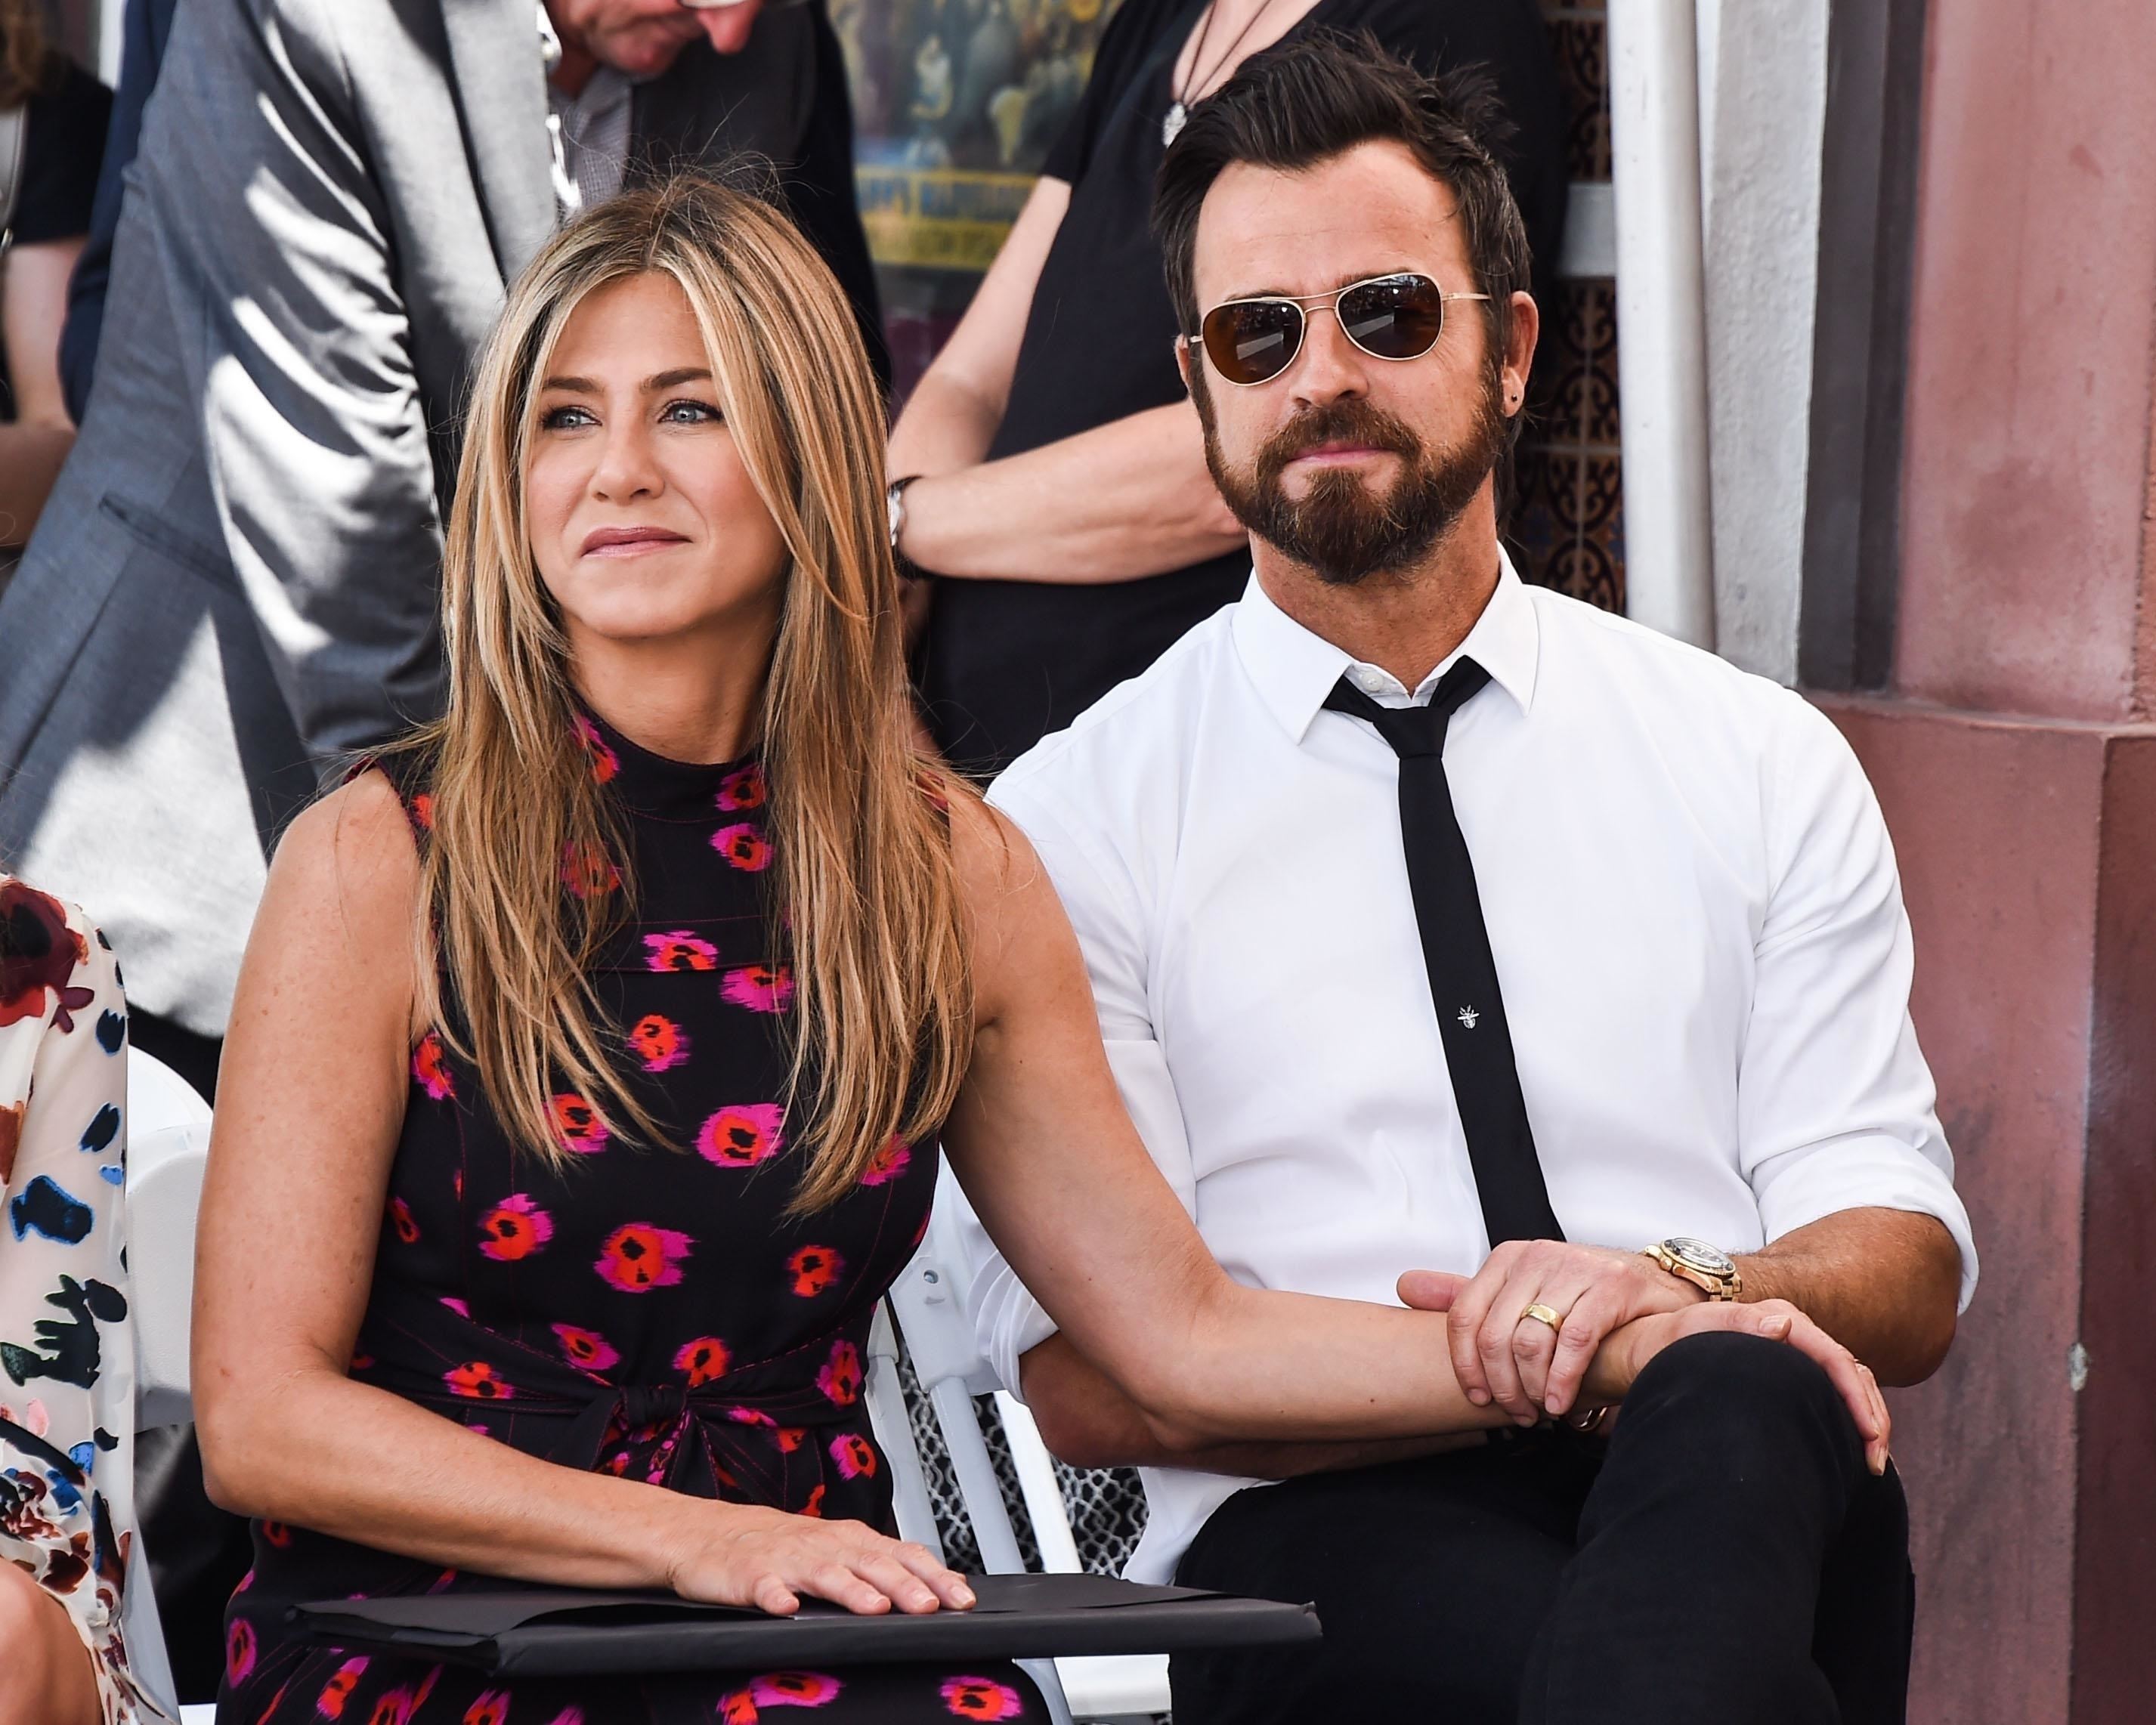 Jennifer Aniston and Justin Theroux attend The Hollywood Walk of Fame Star ceremony honoring actor Jason Bateman in Hollywood, Calif., on July 26, 2017.